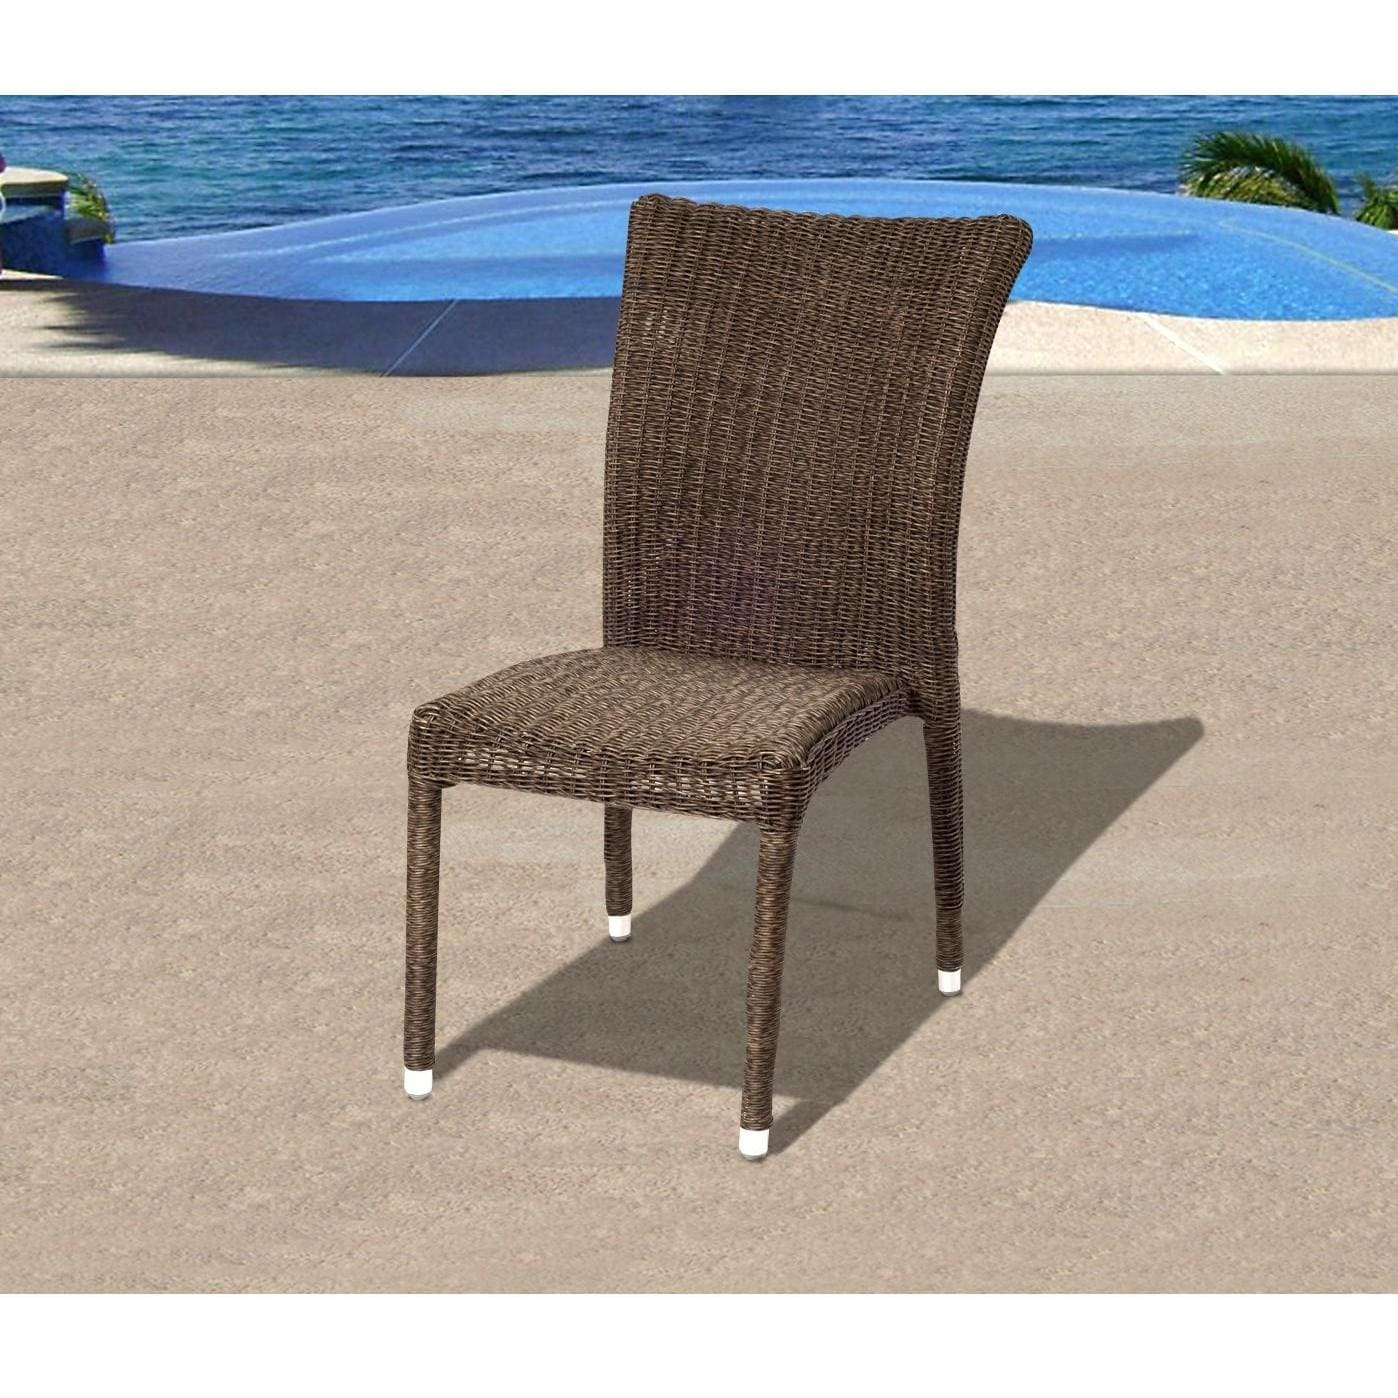 outdoor dining chairs stackable steelcase node chair atlantic bari resin wicker stacking patio side